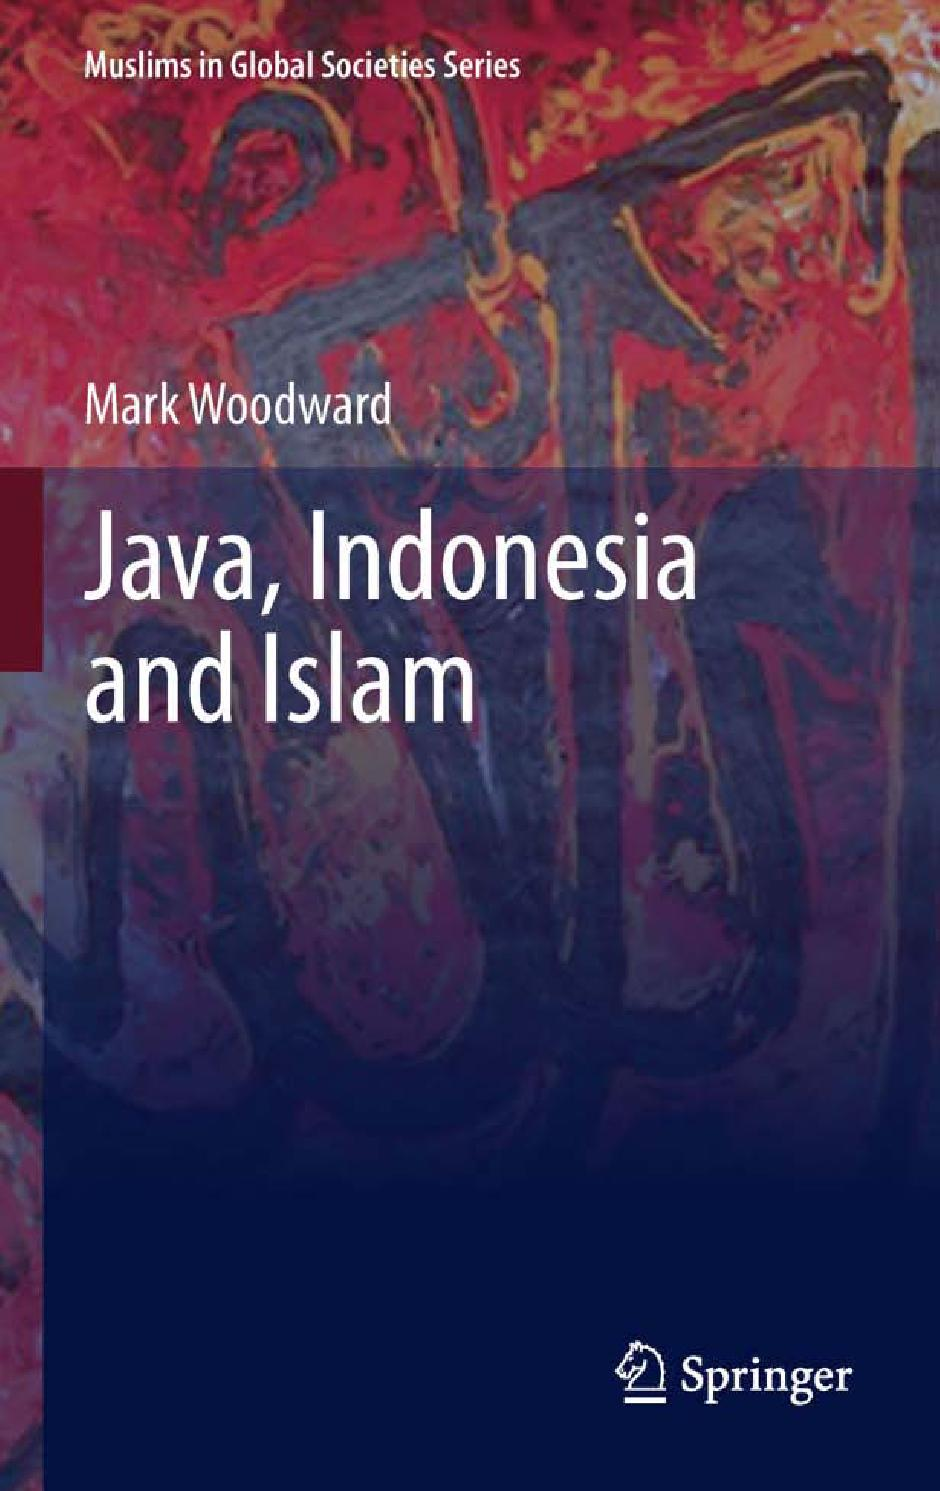 Java Indonesia And Islam By Anif Fathul Issuu Martin Ustek Has Modified The Project To Also Include A Sokoban Game